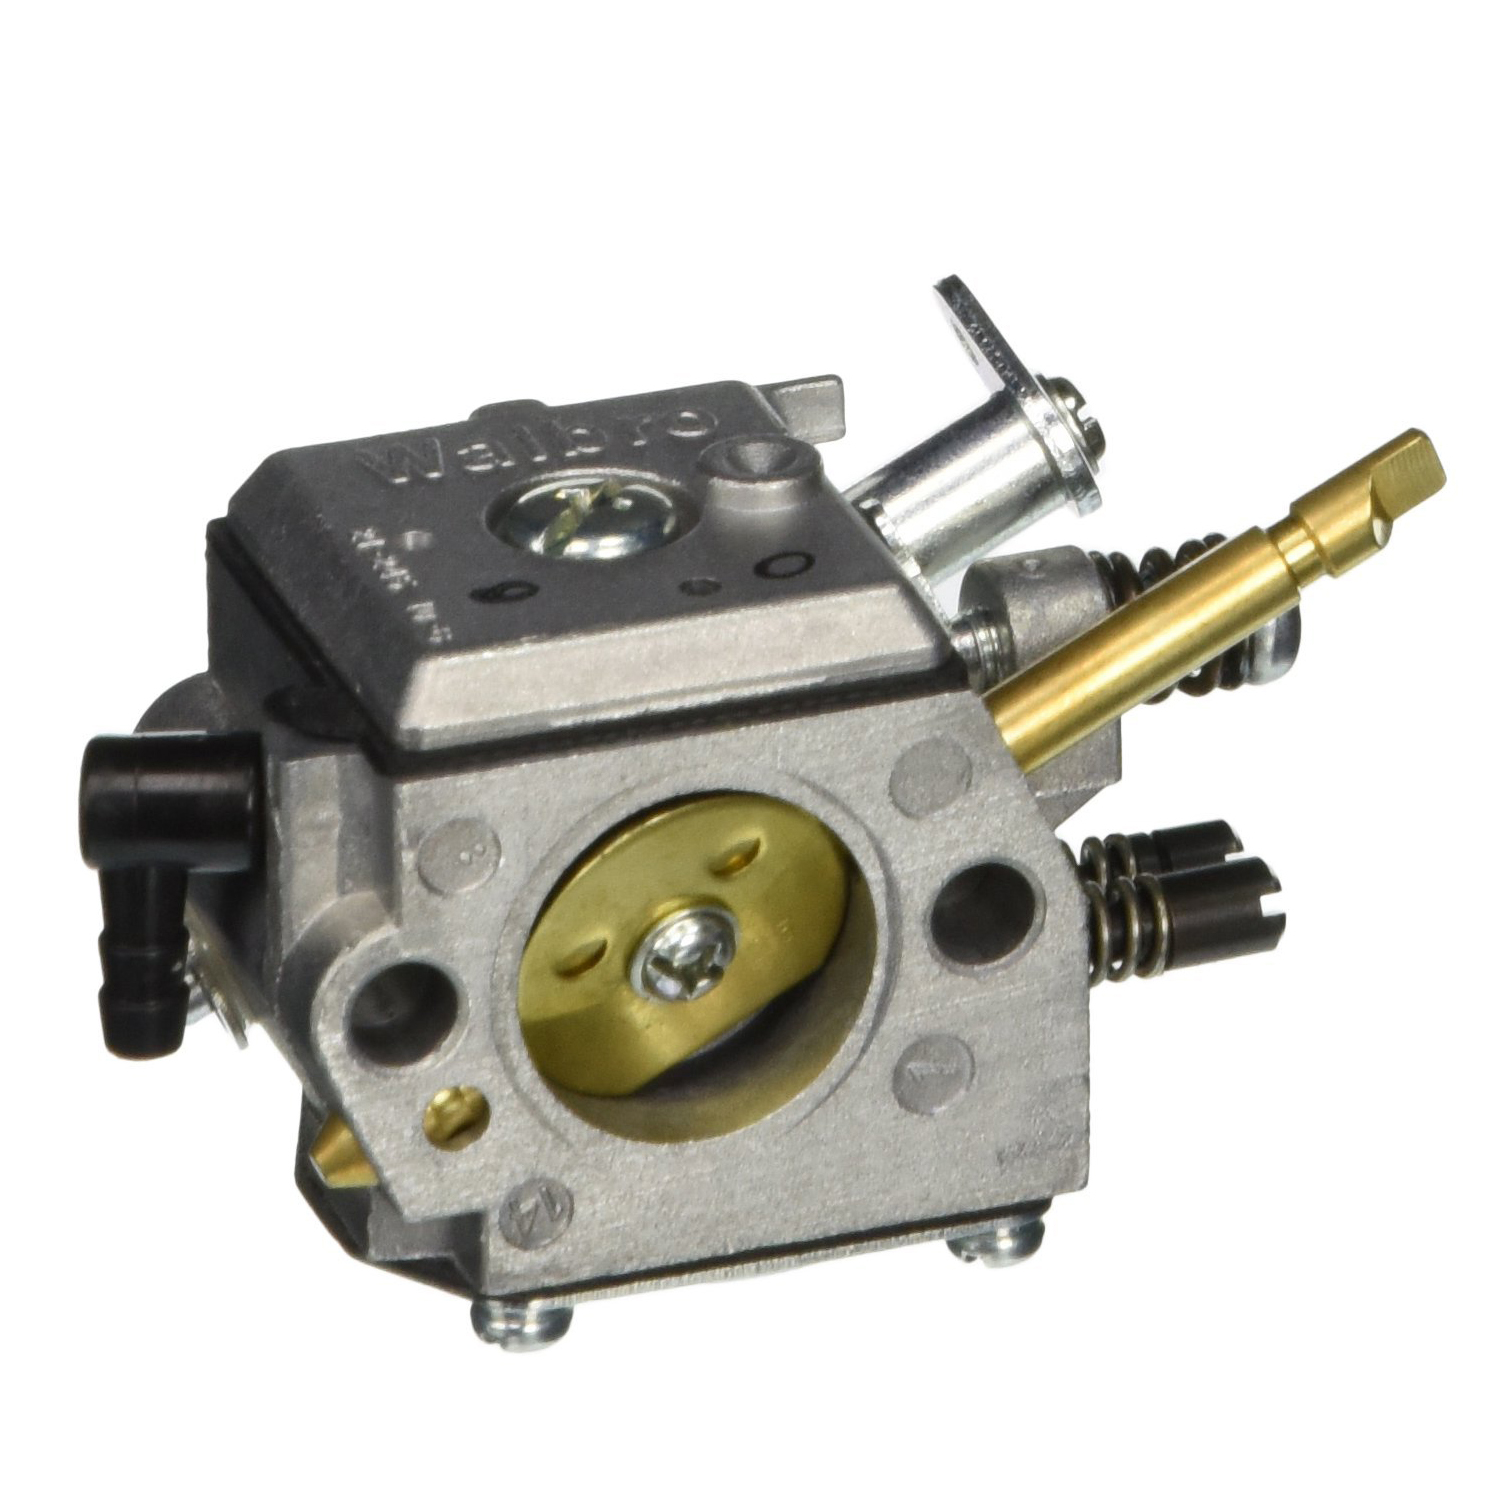 Walbro Carburetor For Tanaka Tle550 Hedge Trimmer Hda 58 1